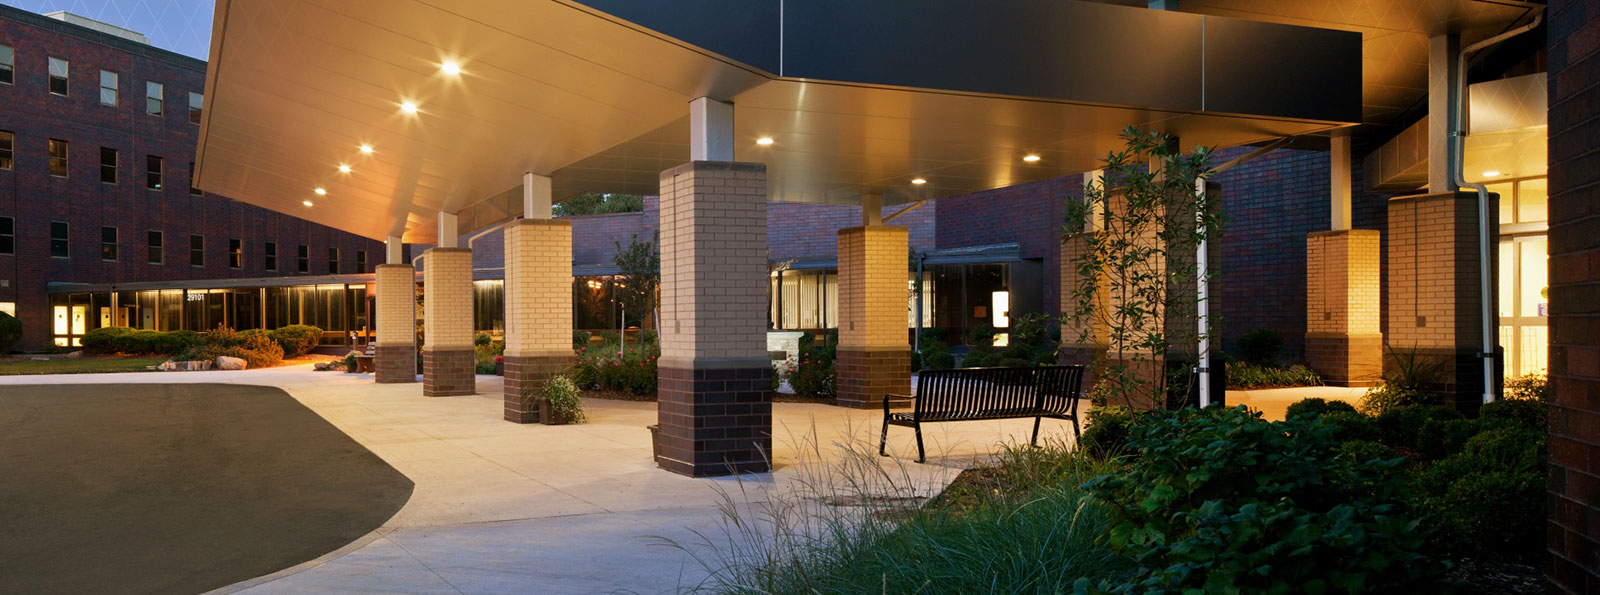 Facilities Master Plan and Implementation | Array Architects